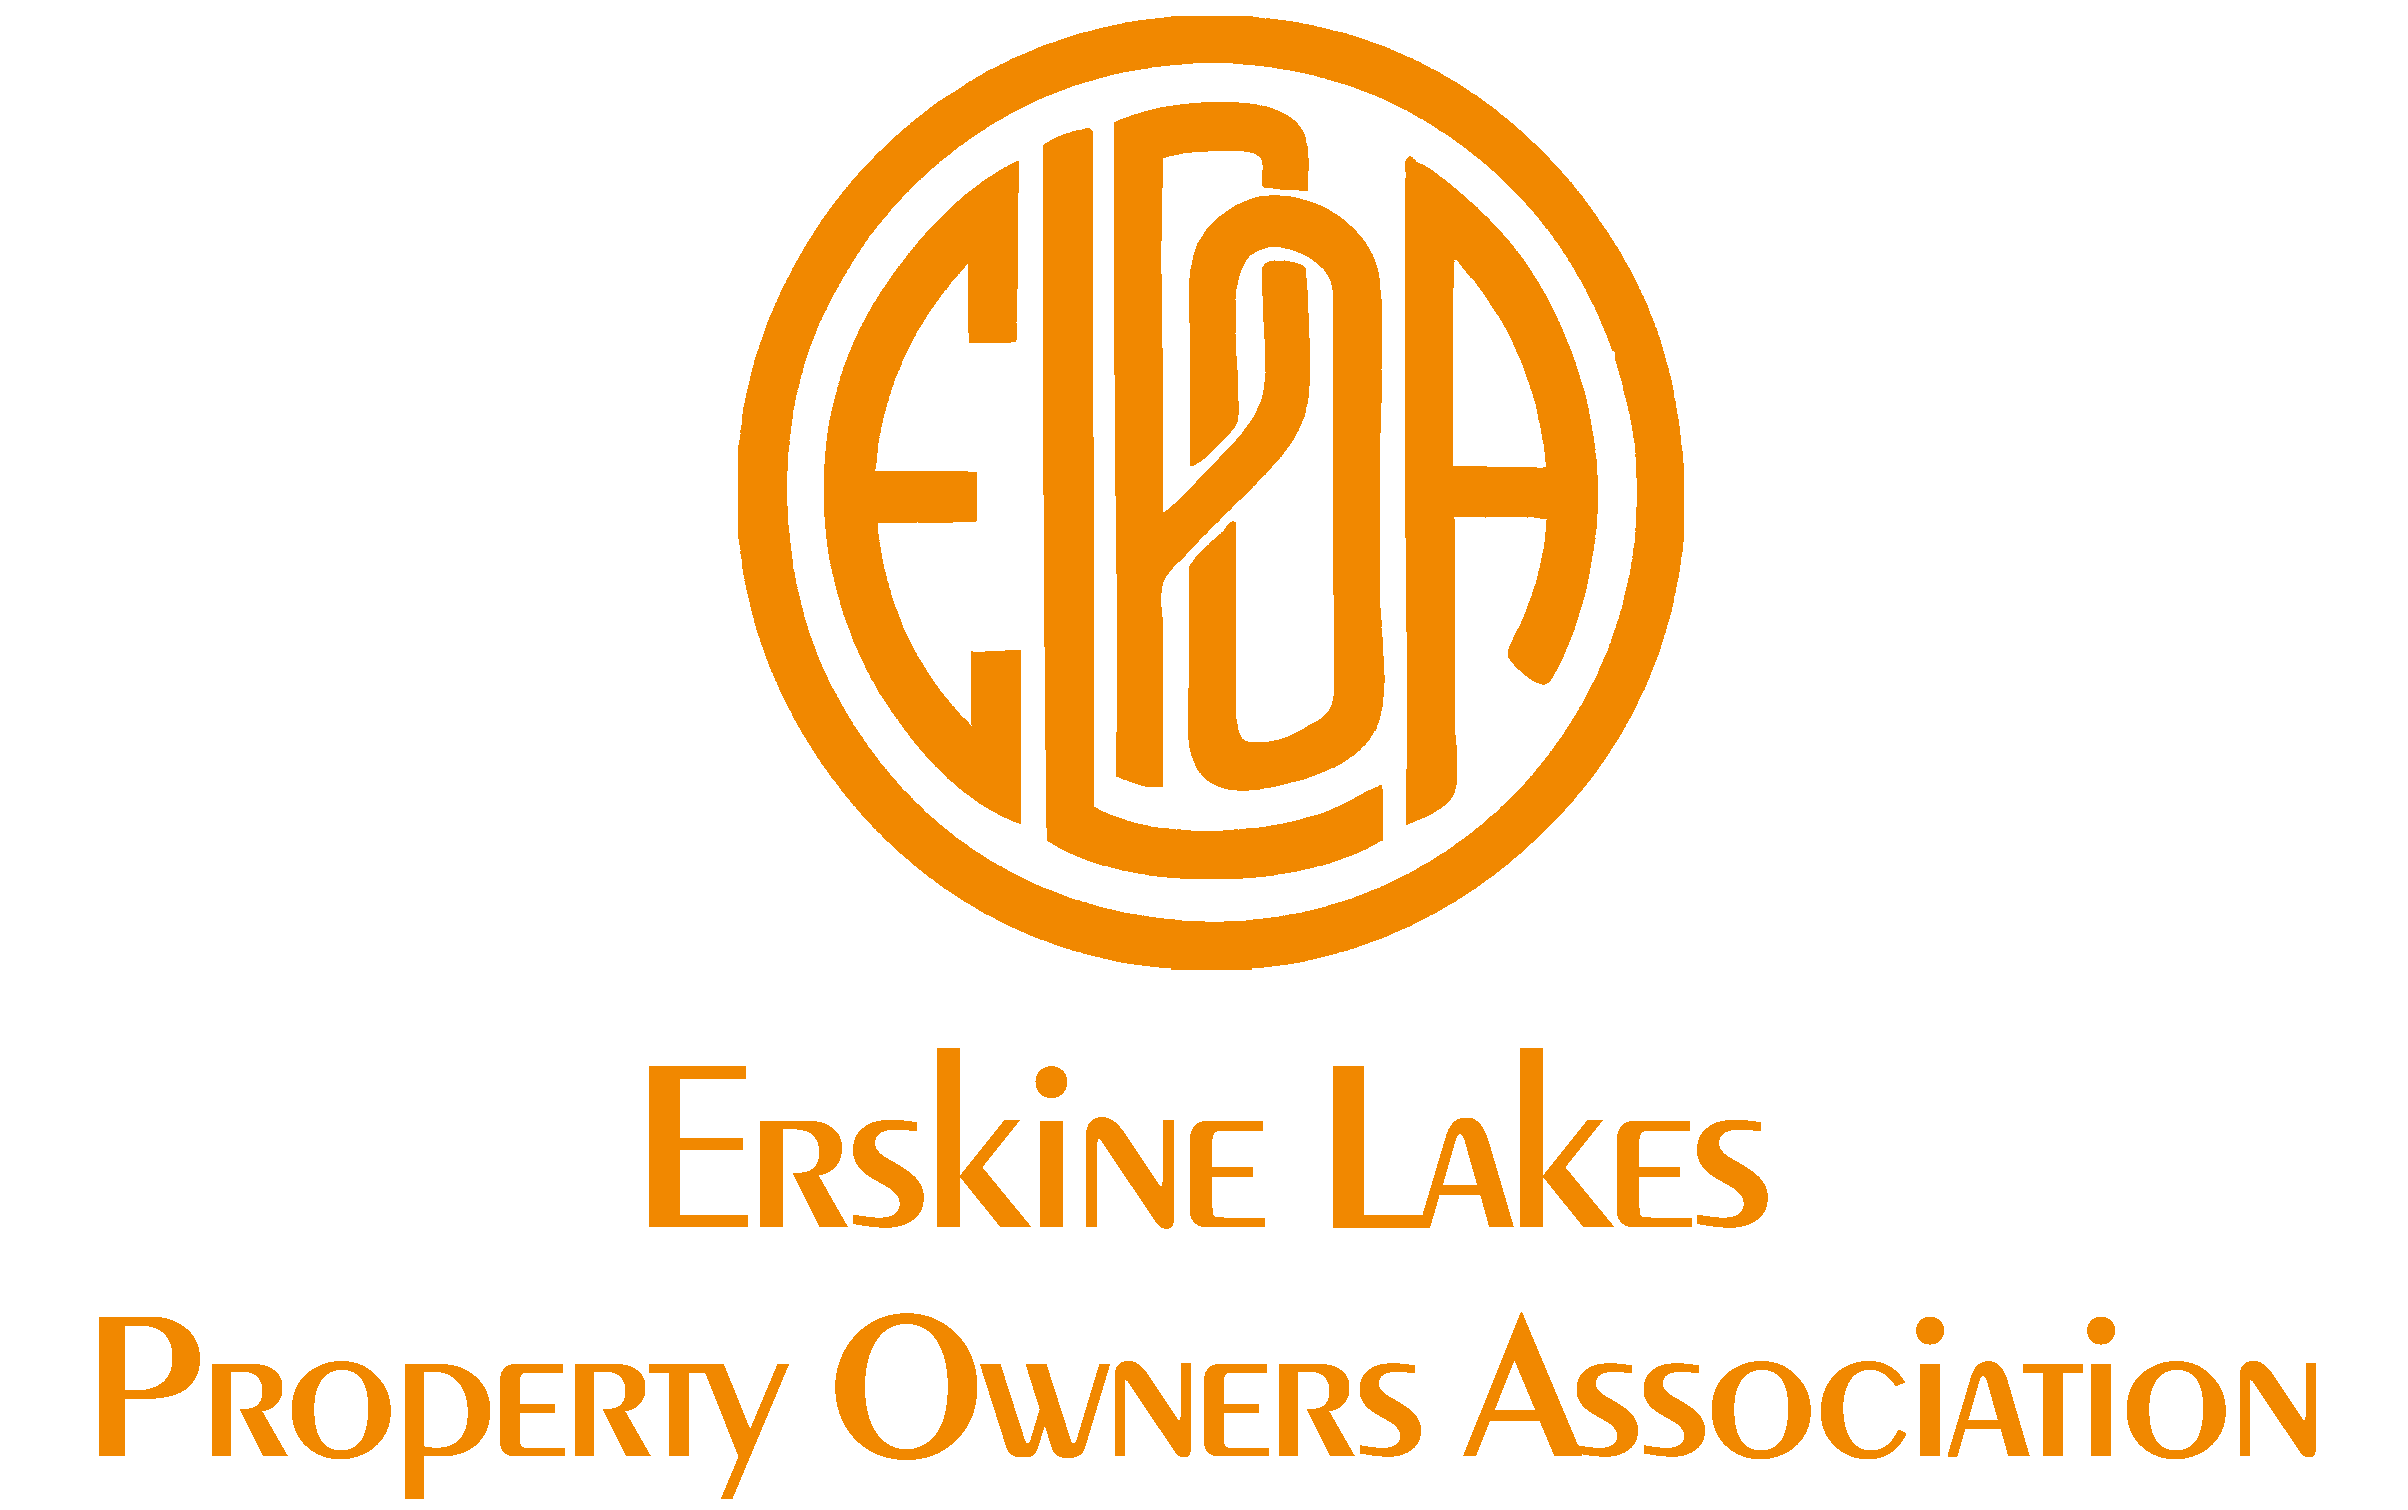 Erskine Lakes Property Owner's Association